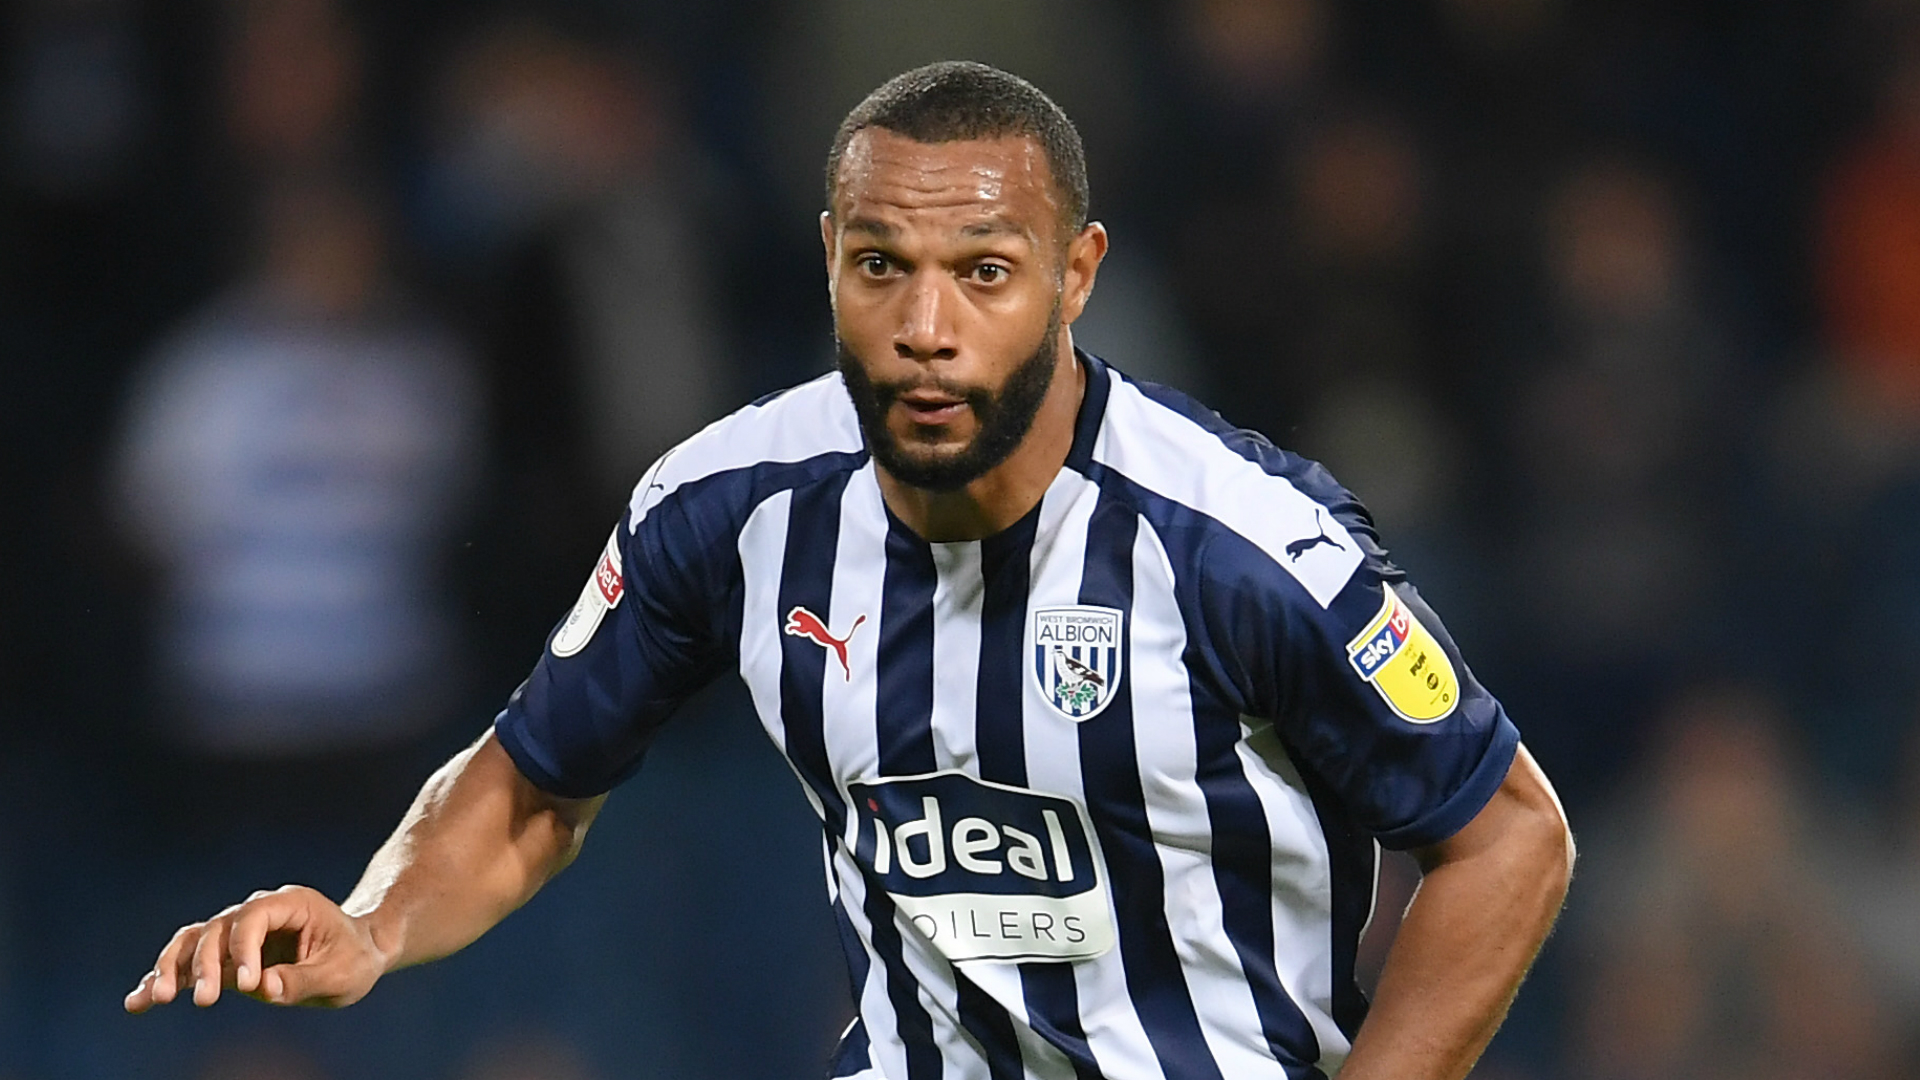 West Brom 4-2 Huddersfield Town: Phillips at the double for fast-finishing Baggies